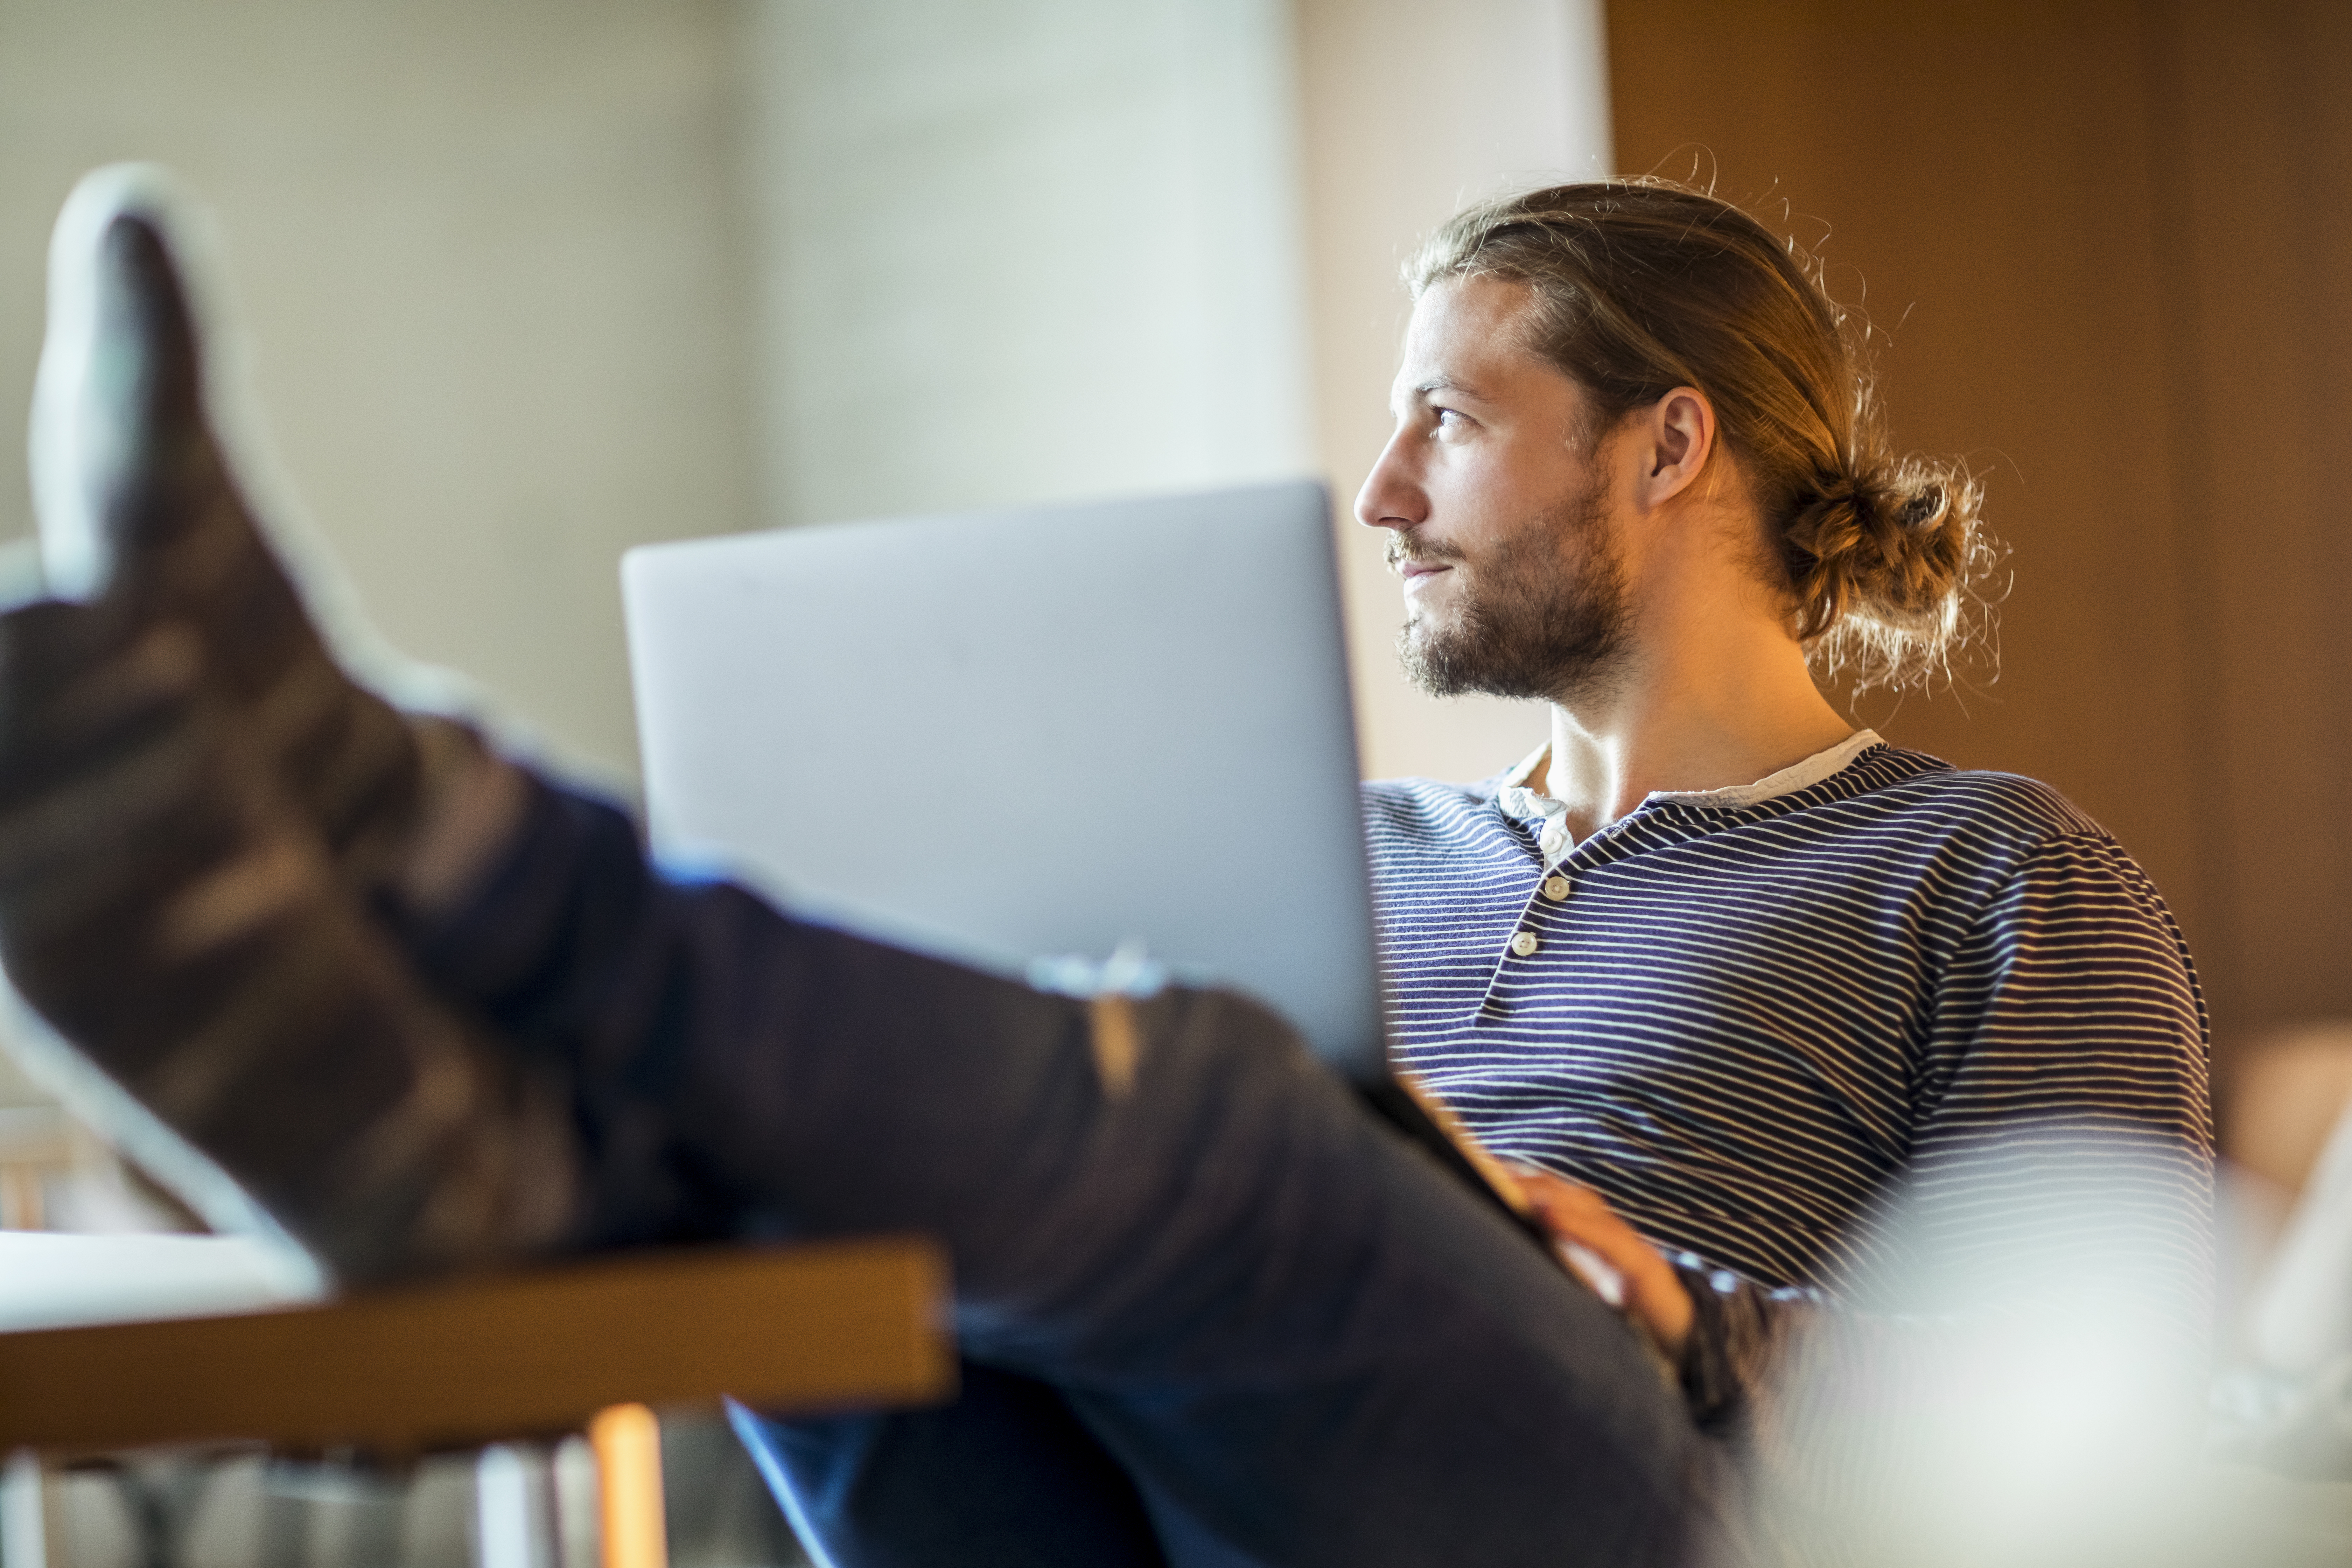 Man working from home (WFH) using Poly products